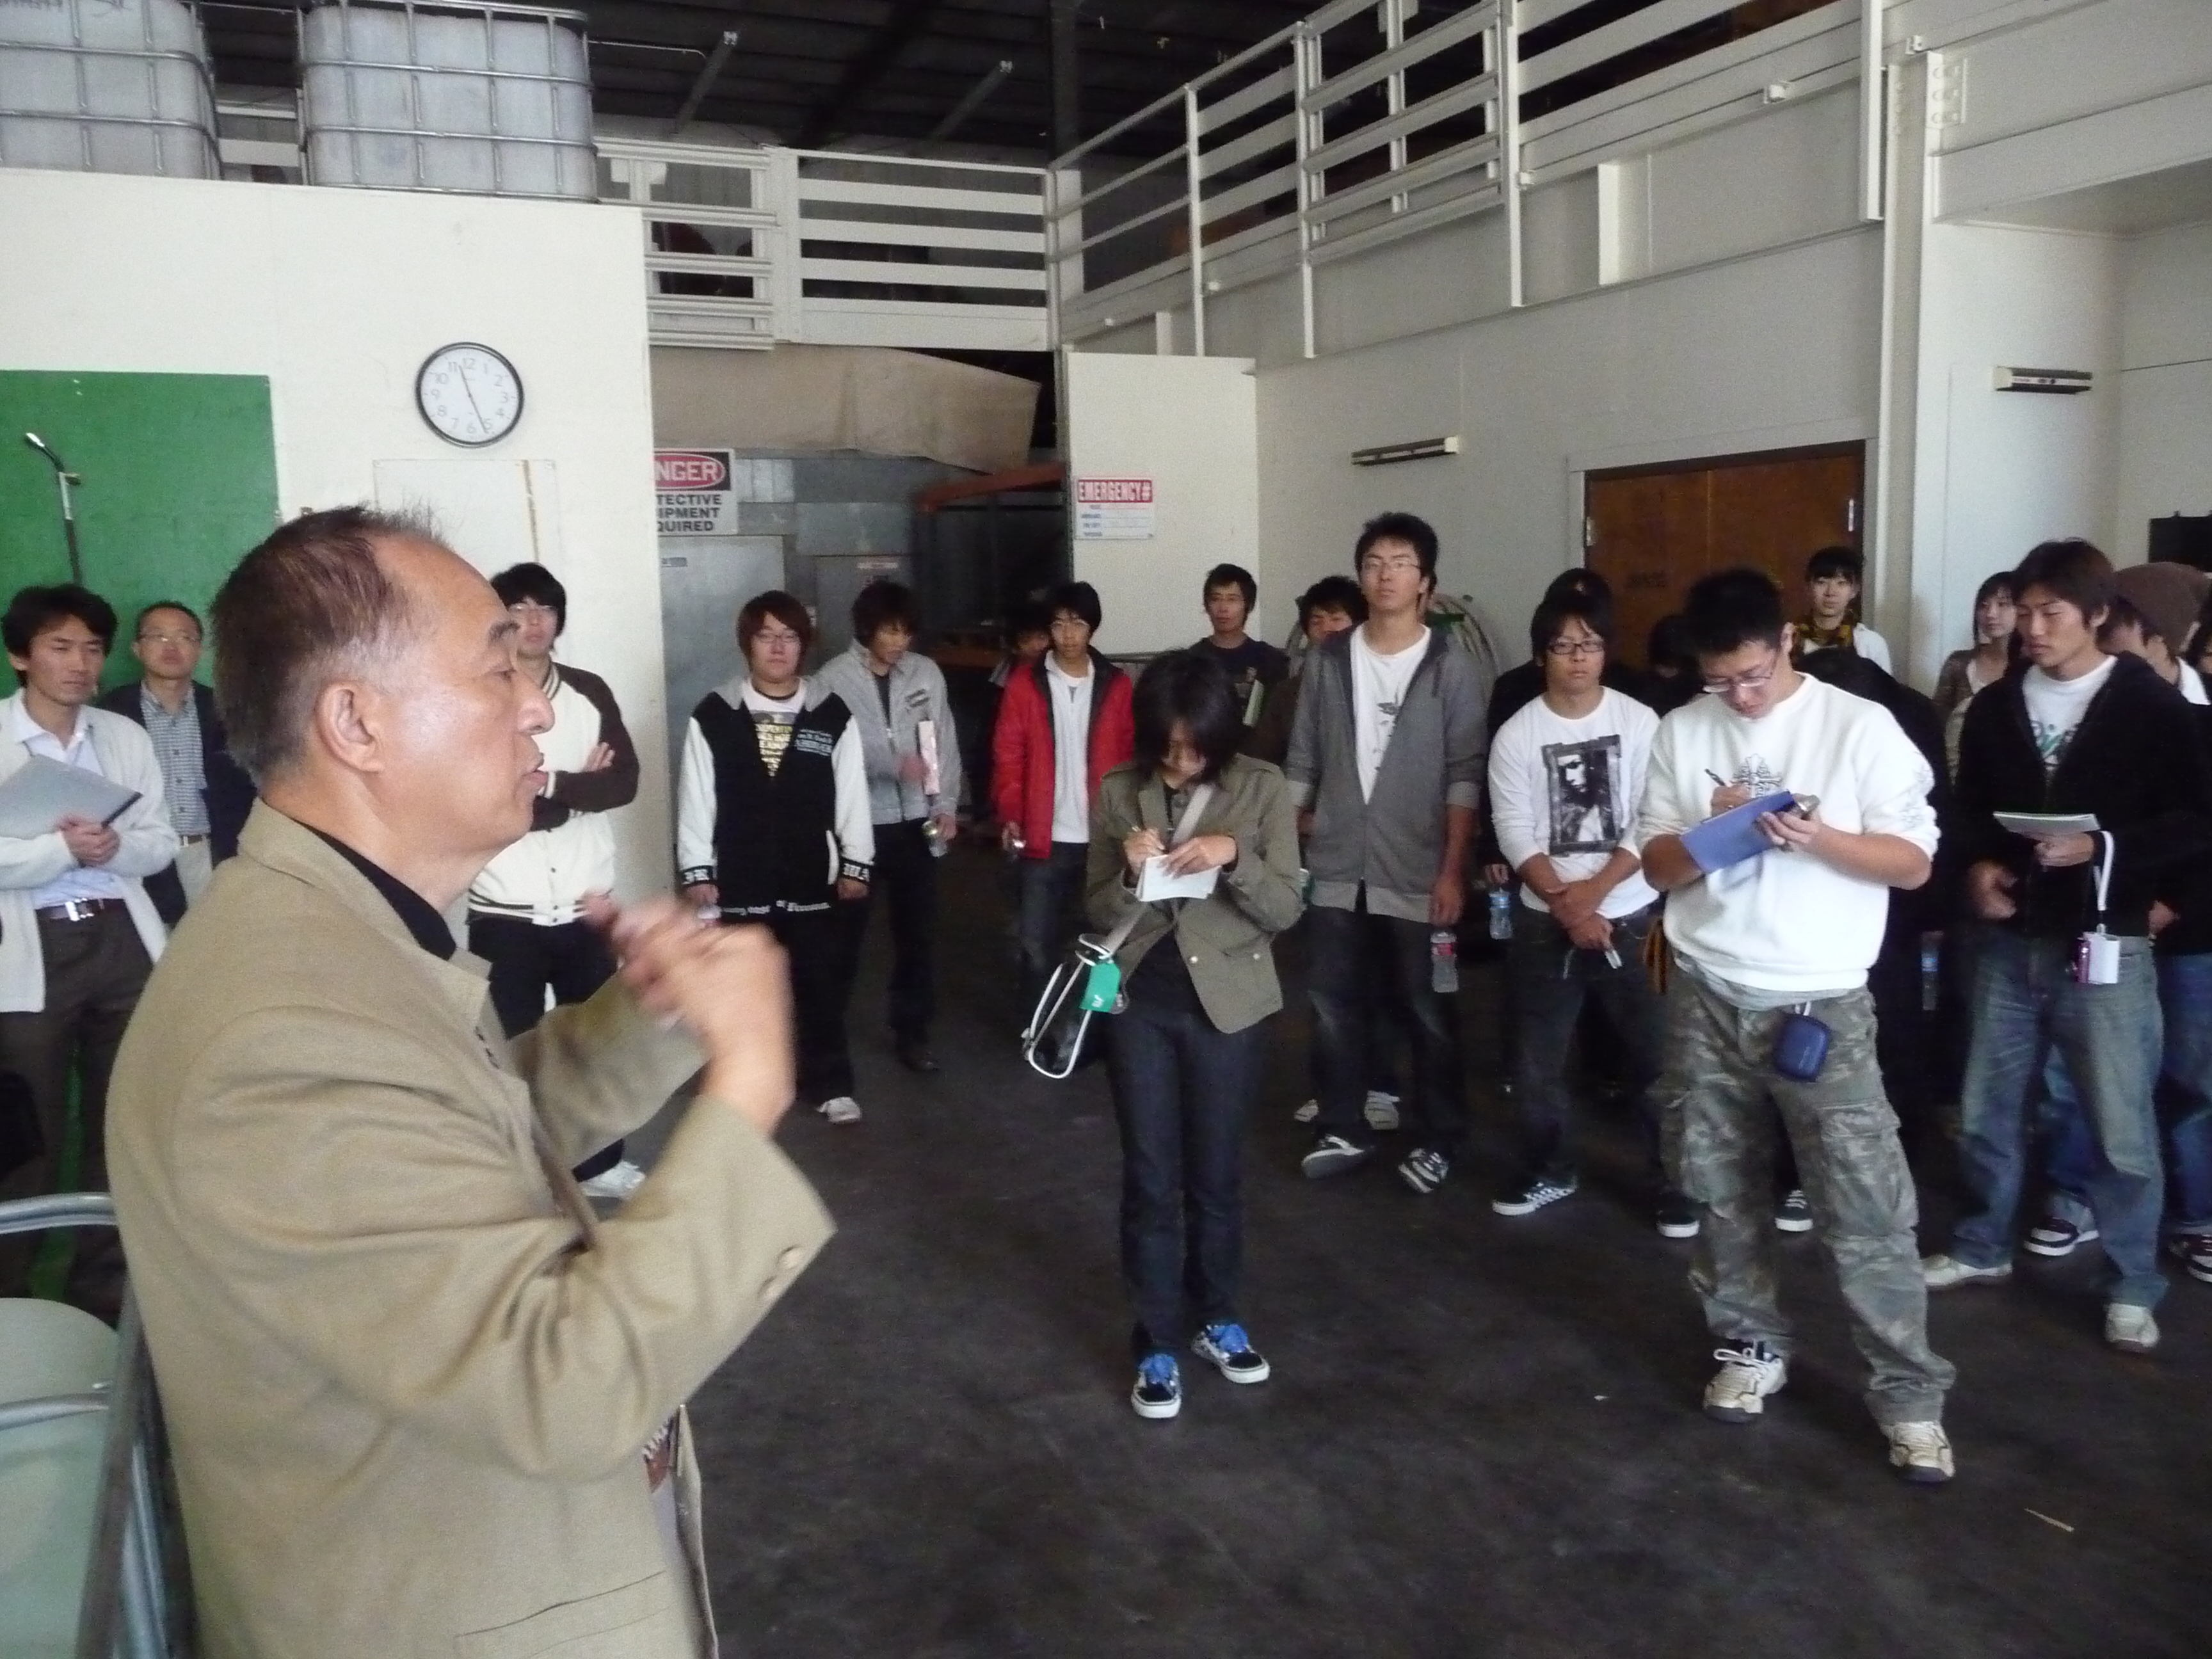 Healthy Soil teaching a group from Japan about sustainable agricultural practices